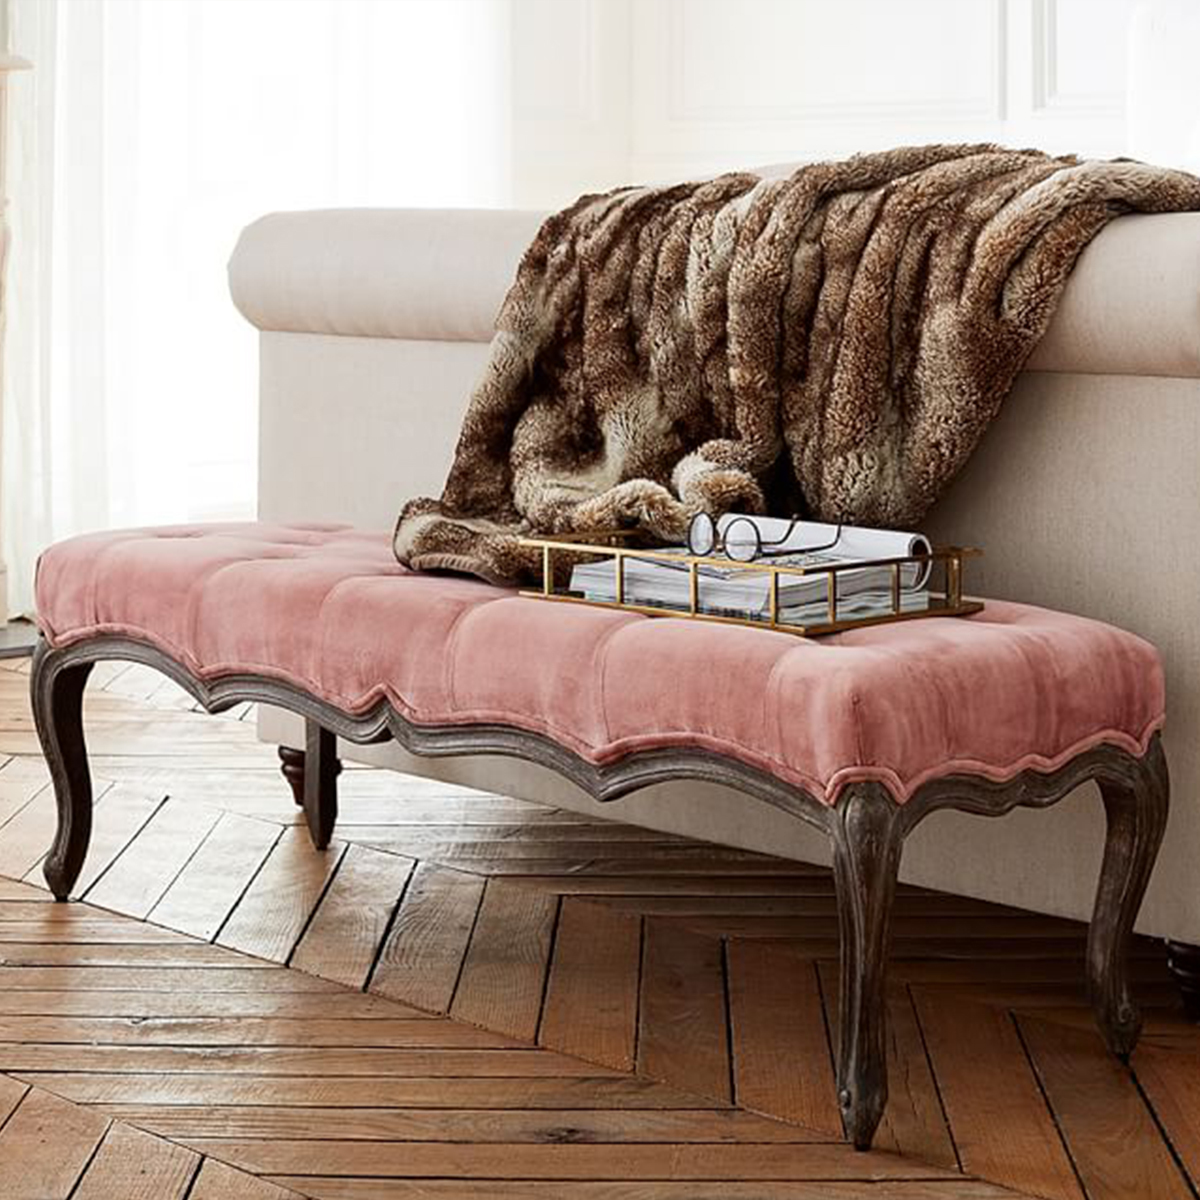 Vintage-inspired bench with tufted pink velvet. photo